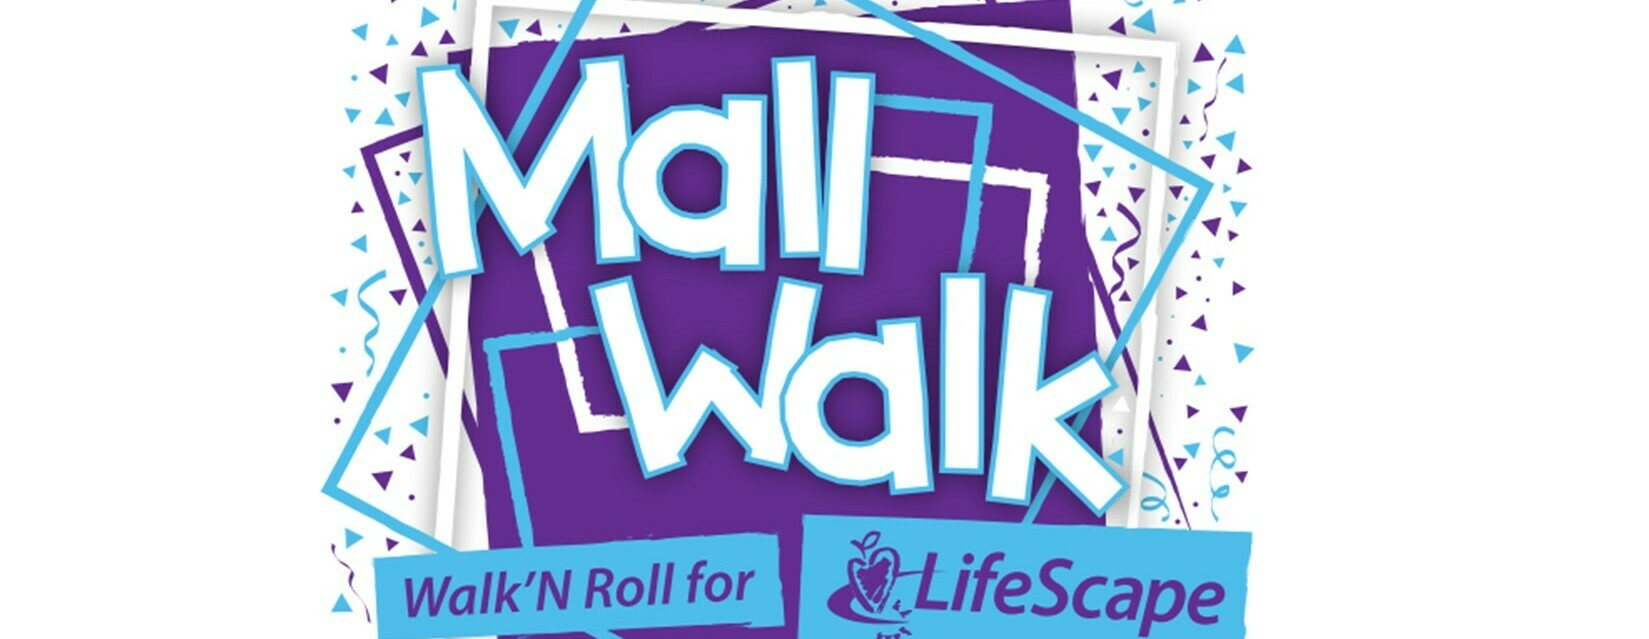 LifeScape MallWalk 2021